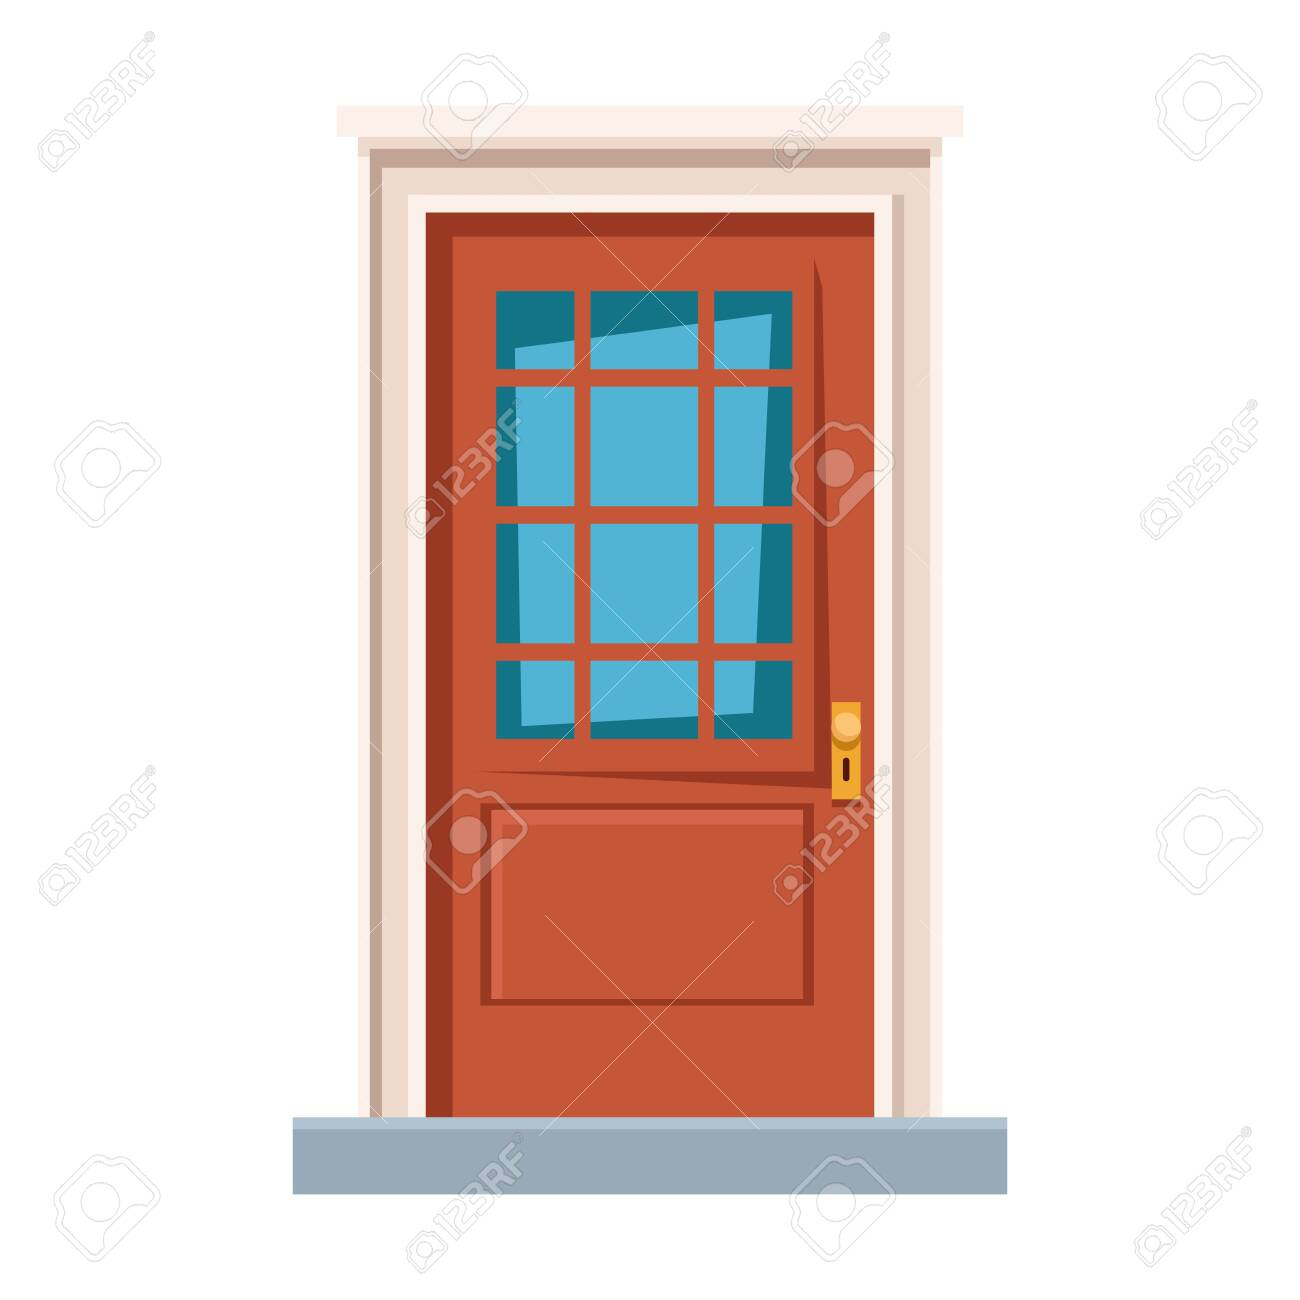 Front Door House Entrace Icon Cartoon Vector Illustration Graphic Royalty Free Cliparts Vectors And Stock Illustration Image 127173352